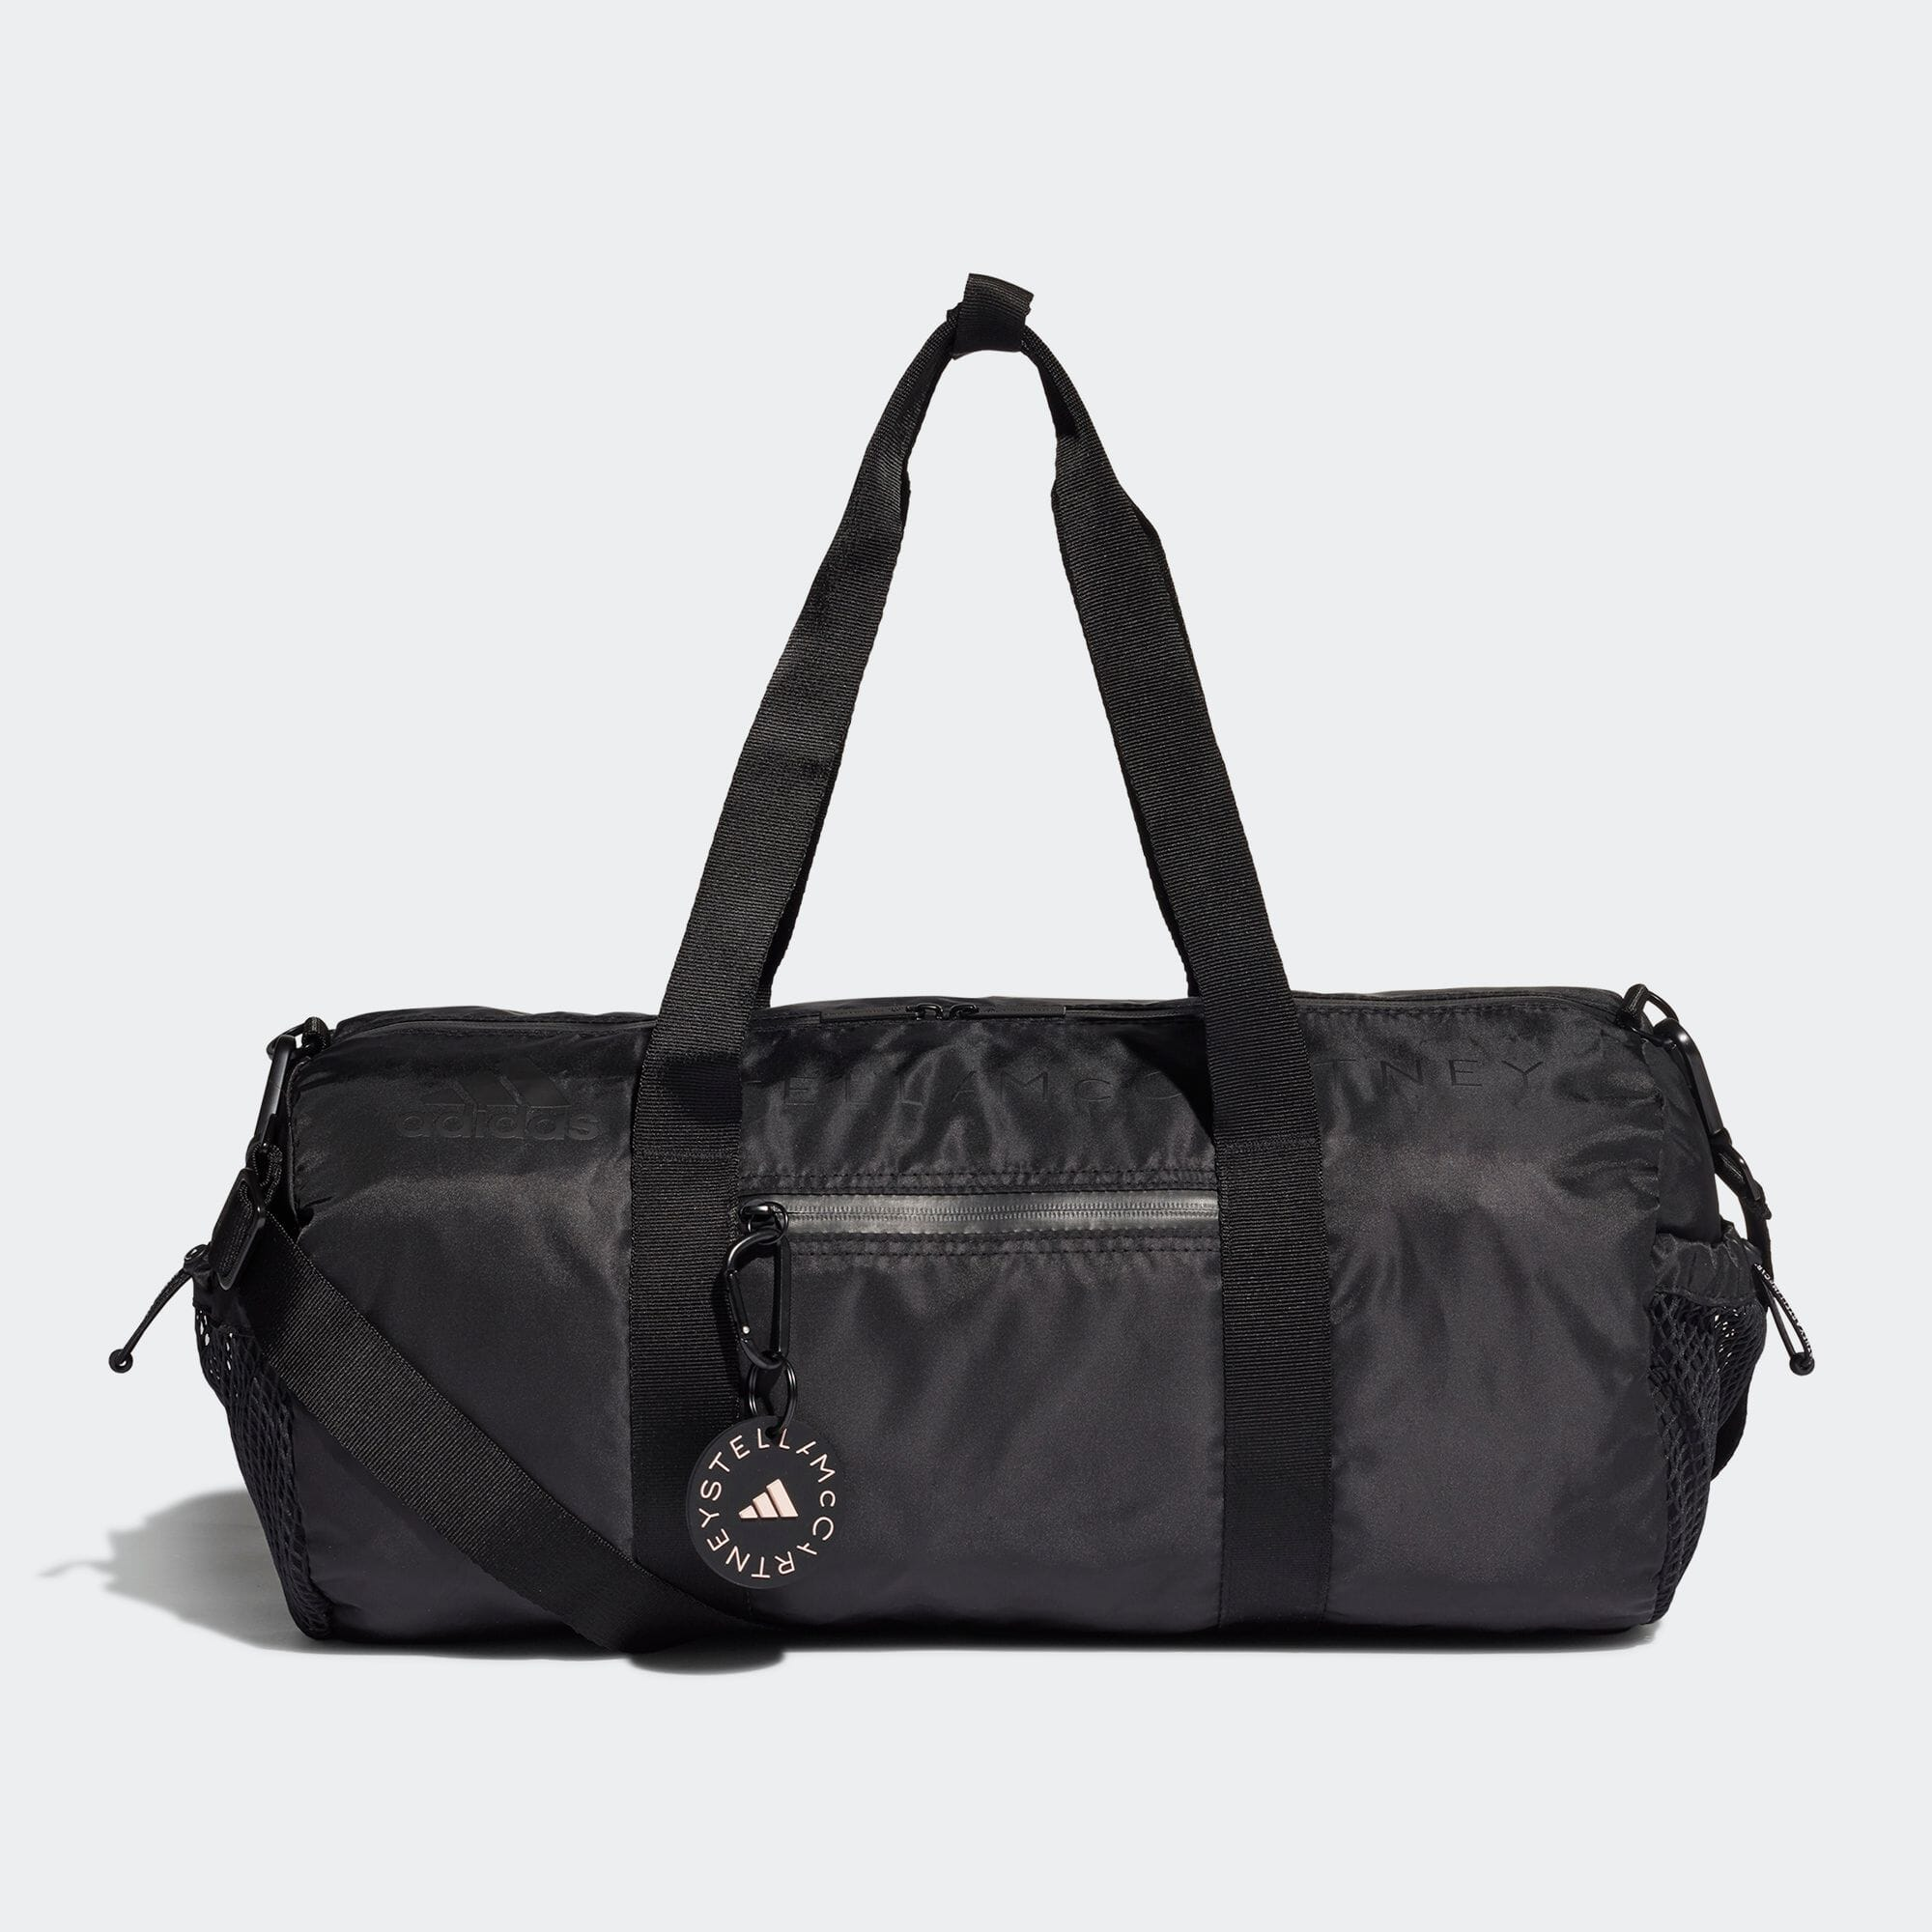 adidas by Stella McCartney ラウンドスタジオバッグ /  adidas by Stella McCartney Round Studio Bag